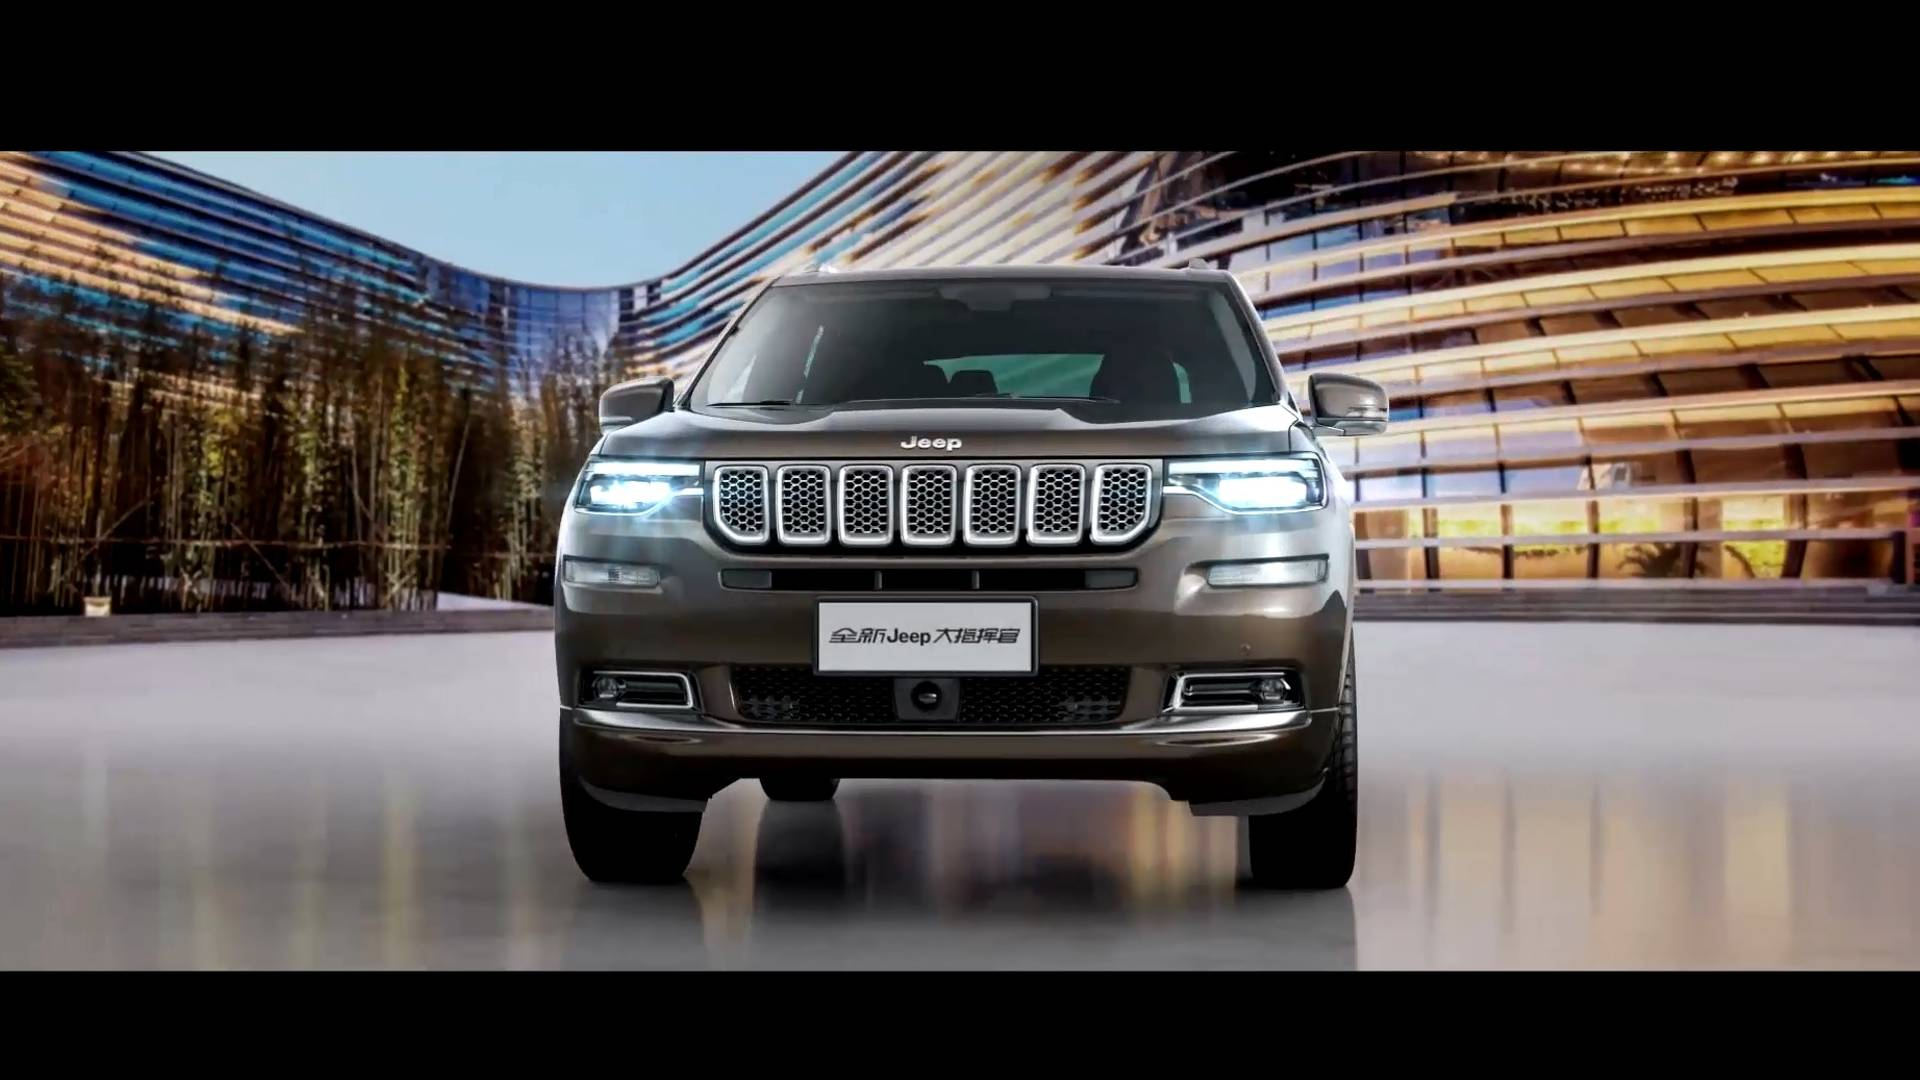 jeep-grand-commander-for-china.jpg